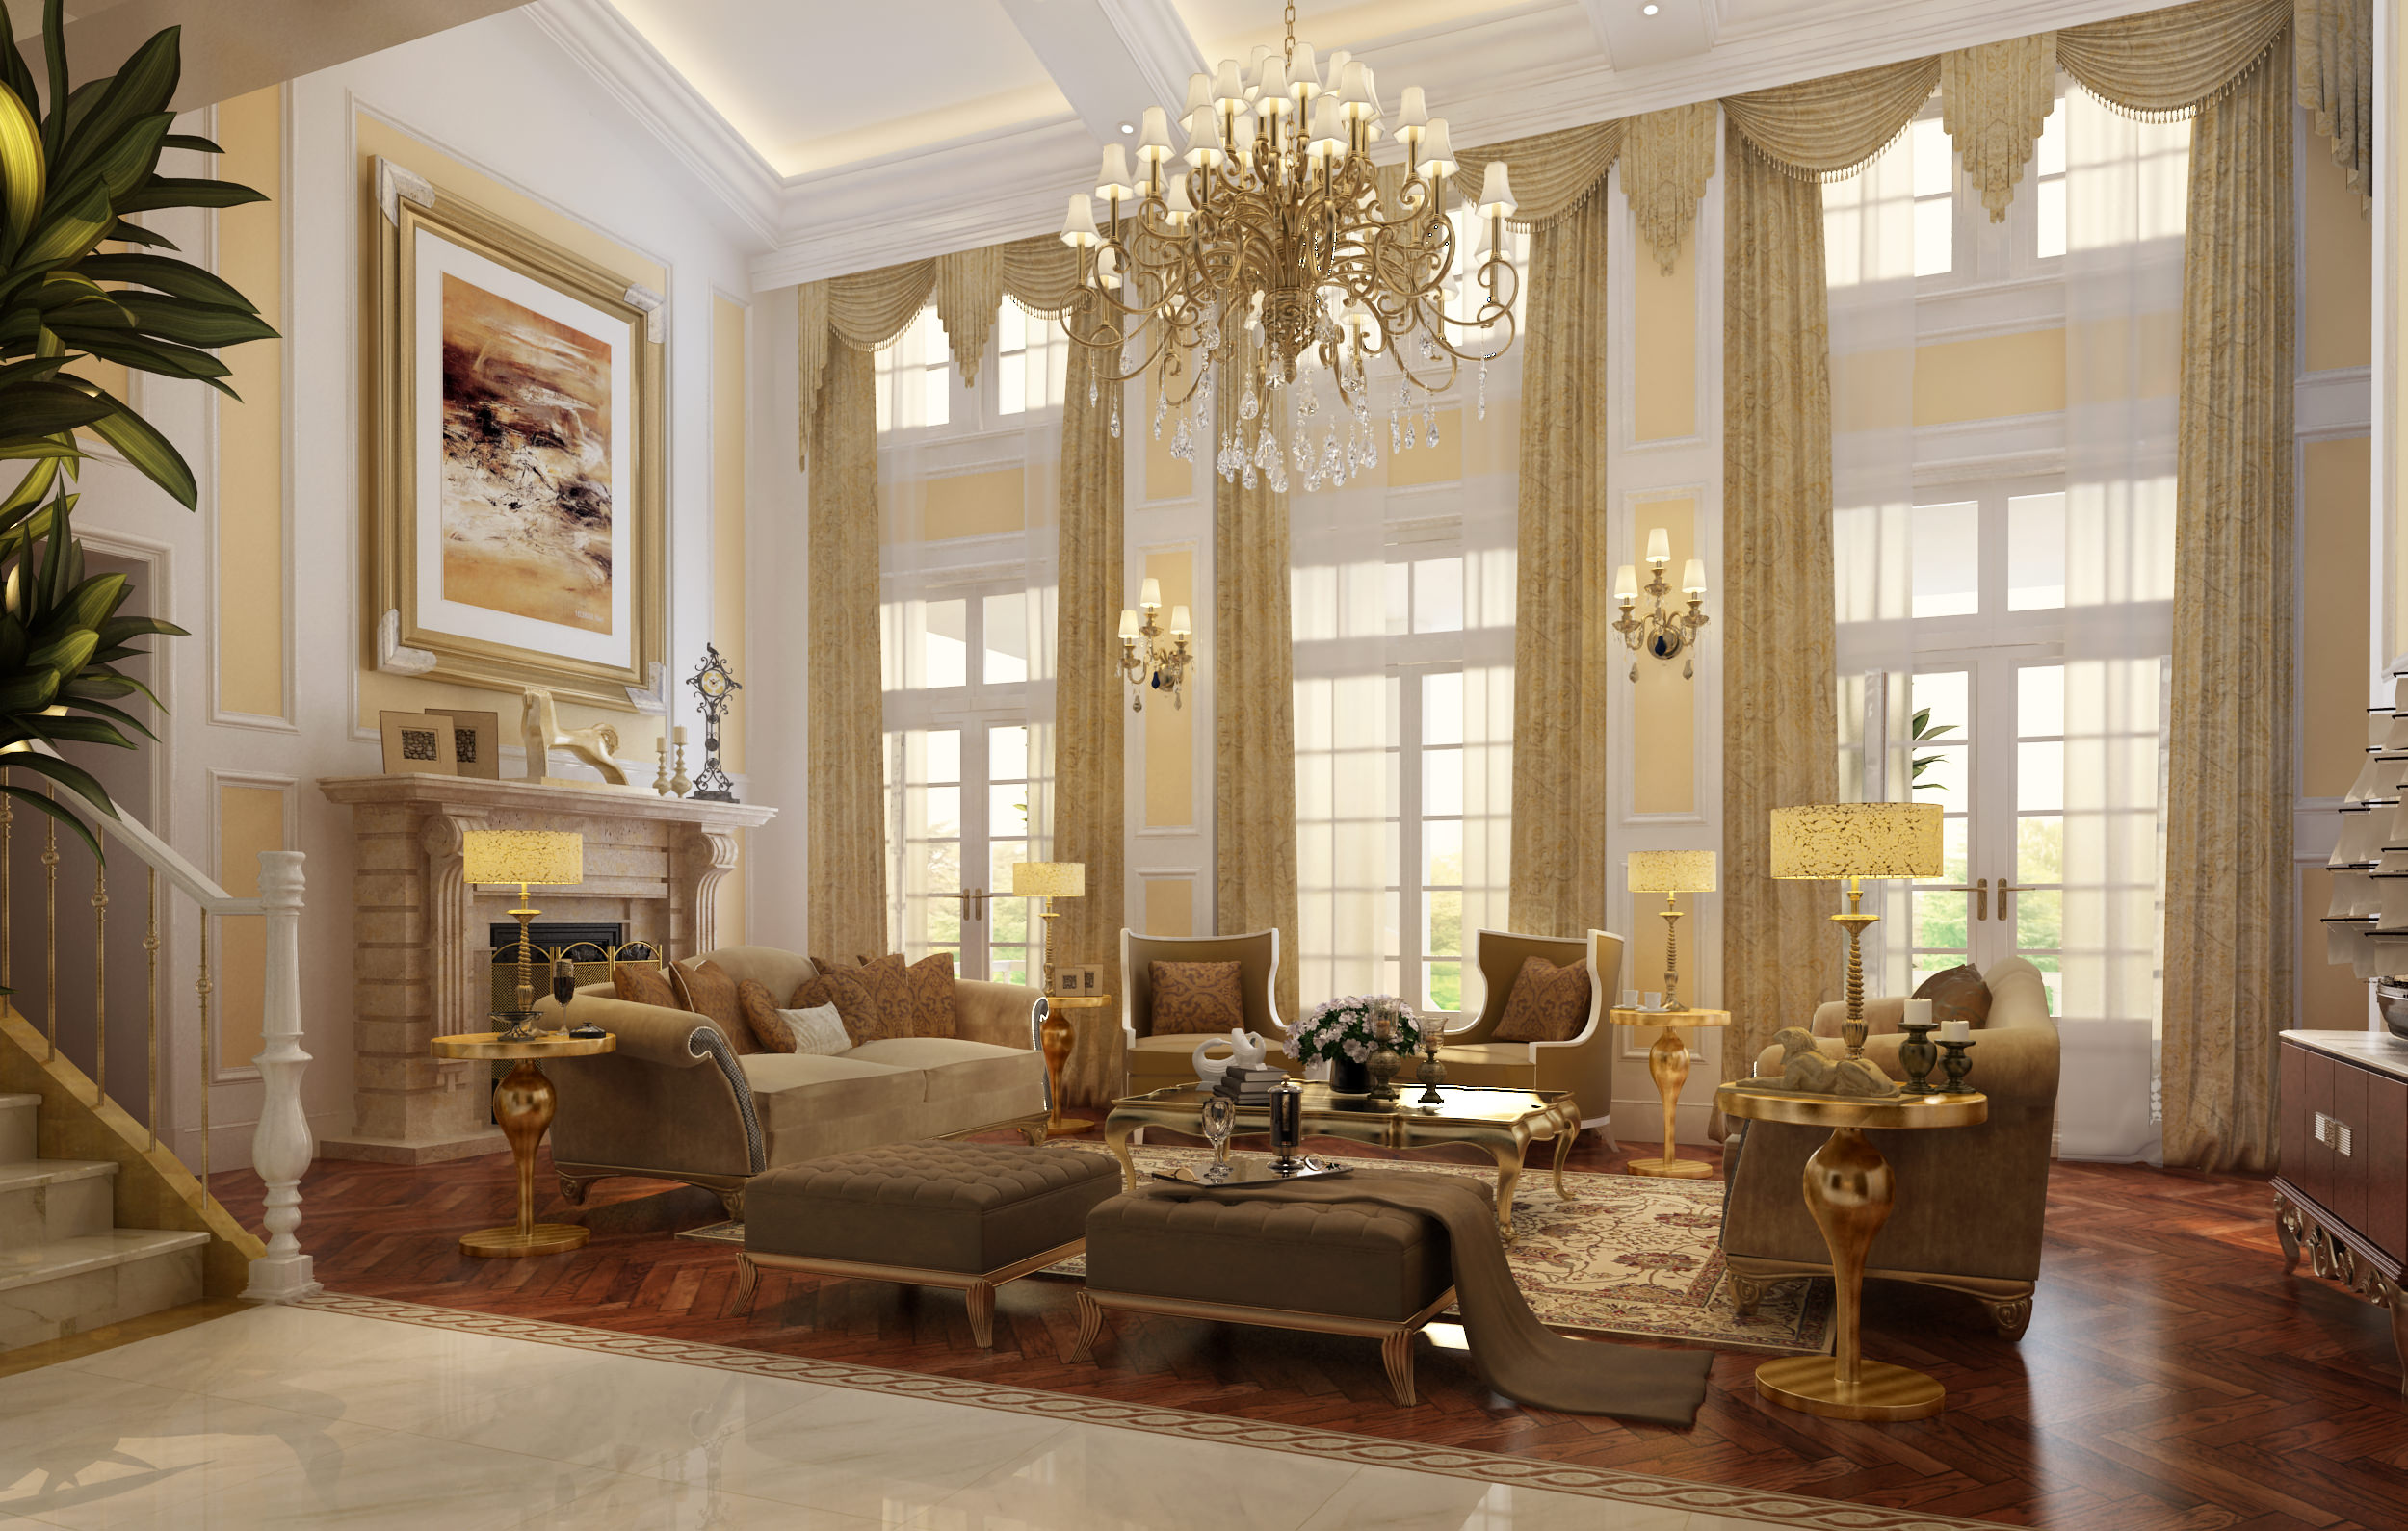 Luxury Living Rooms Furniture Plans Extraordinary Luxury Living Room With Fireplace 3D Model  Cgtrader Inspiration